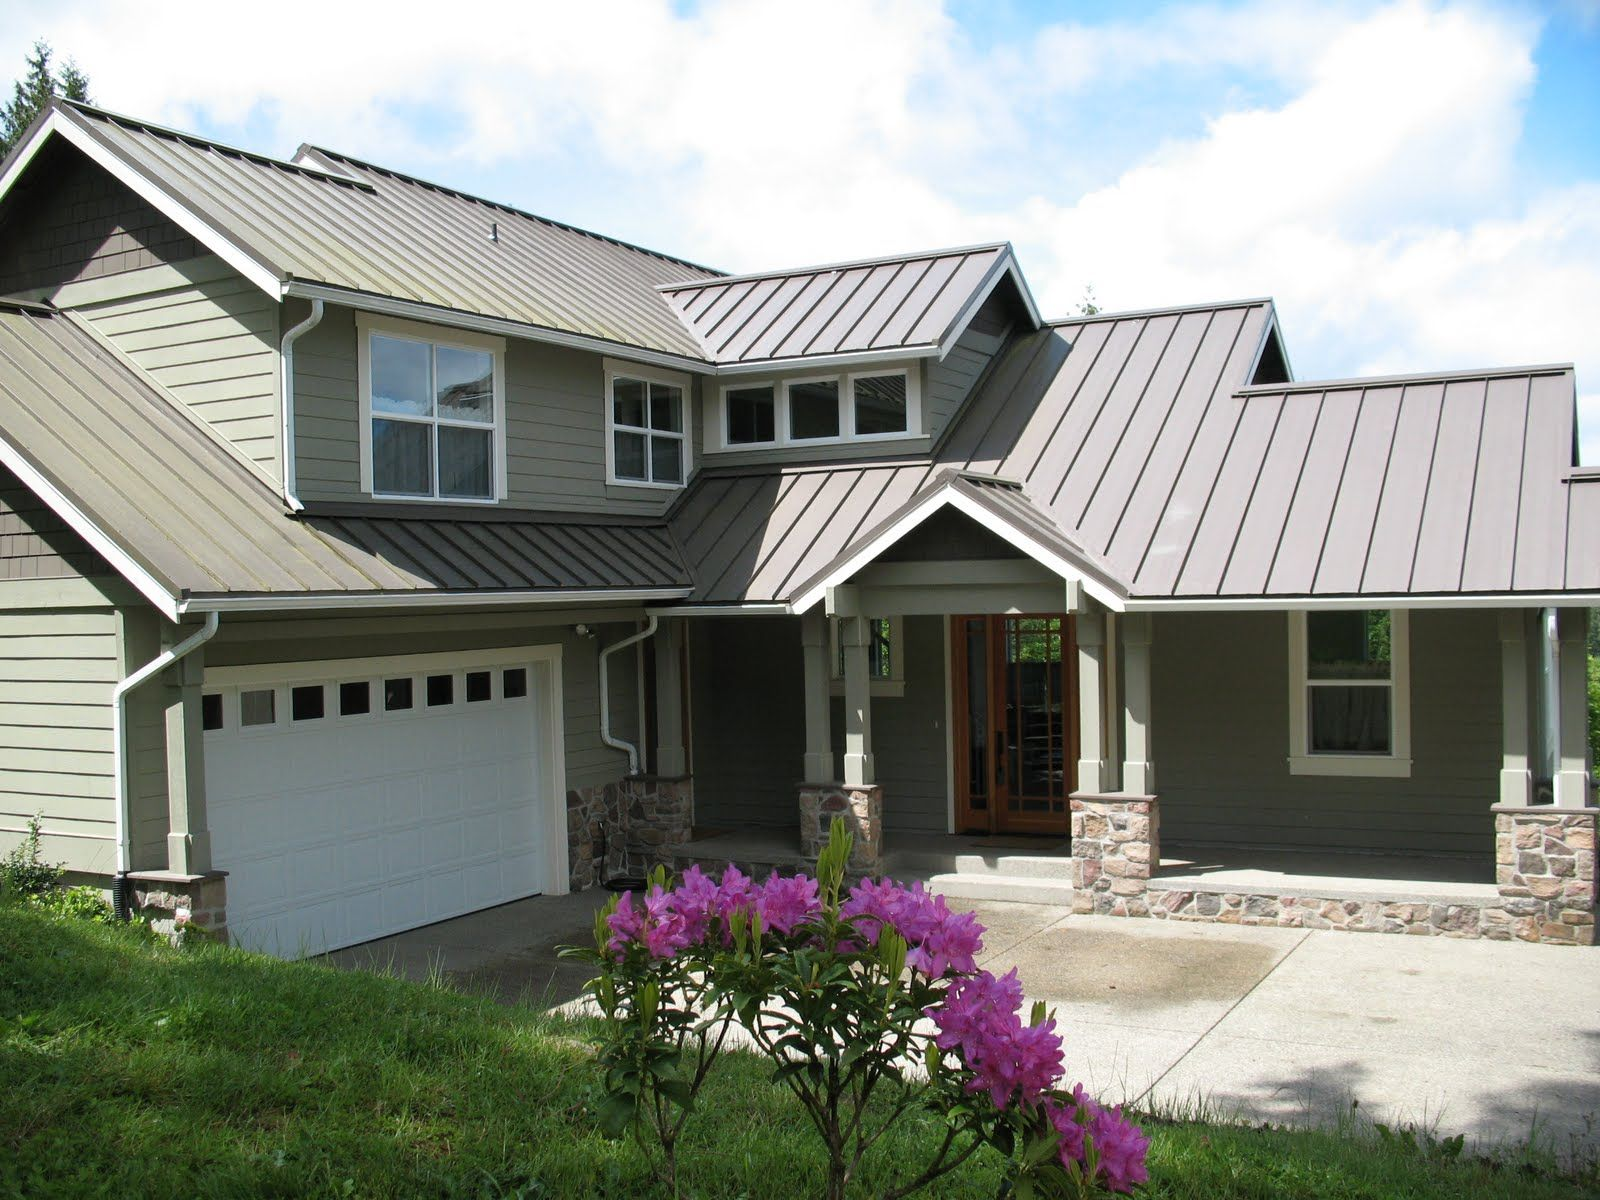 Farmhouse Exterior Colors With Metal Roof Grey Metal Roof With Green Painted House Looks Nice